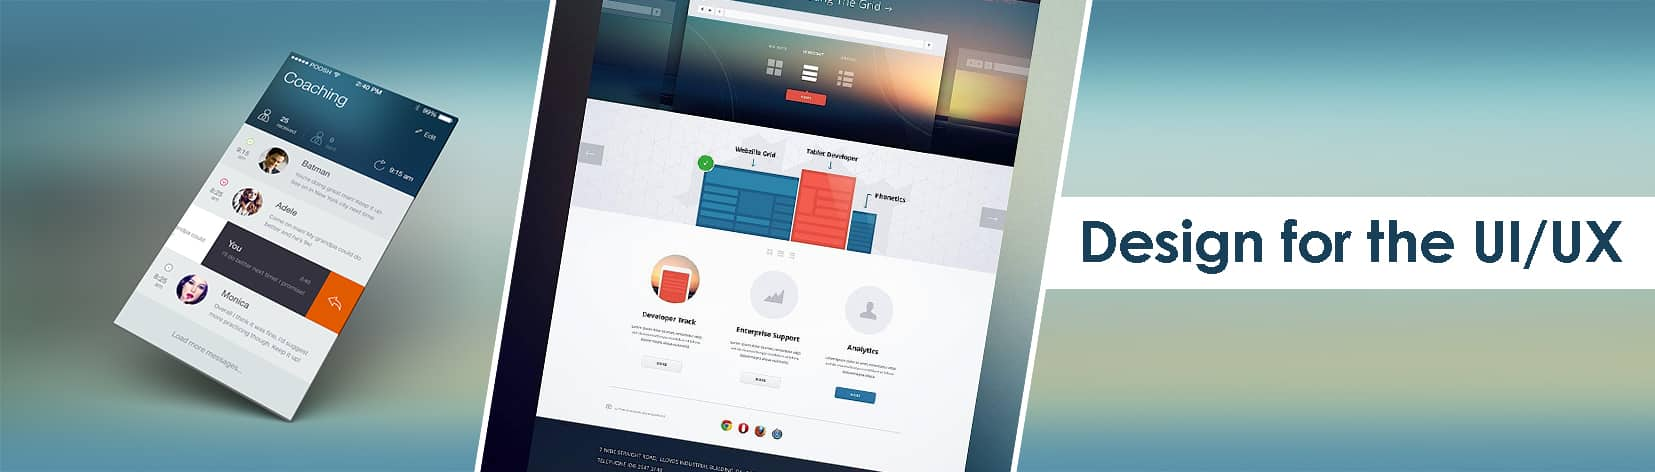 Design for the UI/UX Design for the web